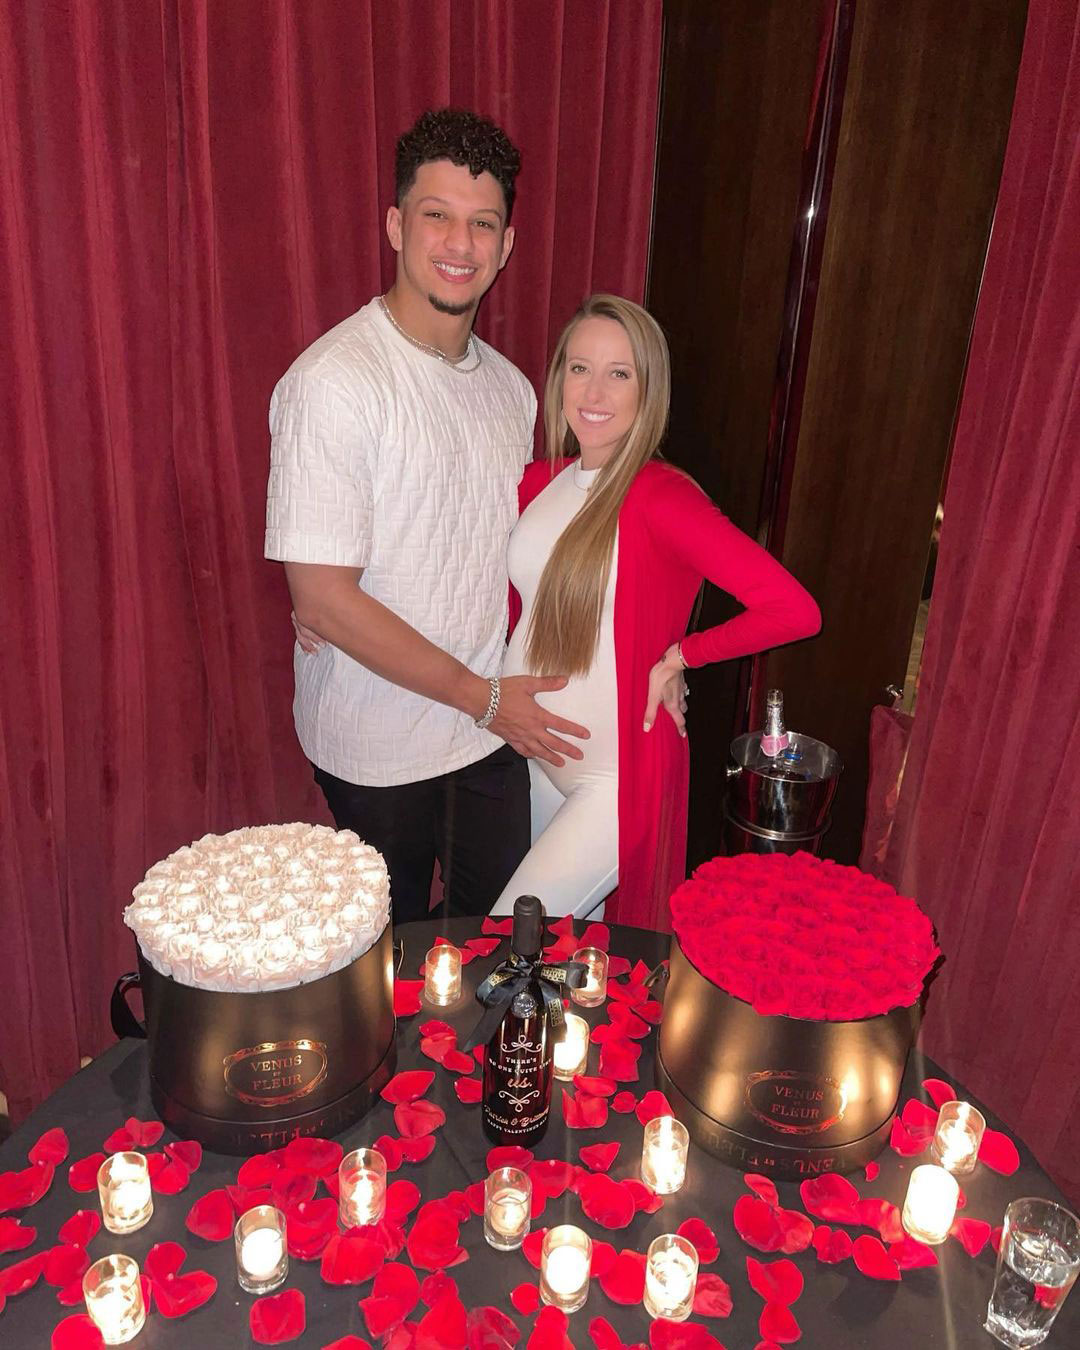 Pregnant Brittany Matthews Shares Sweet Photo with Patrick Mahomes from Valentine's Dinner